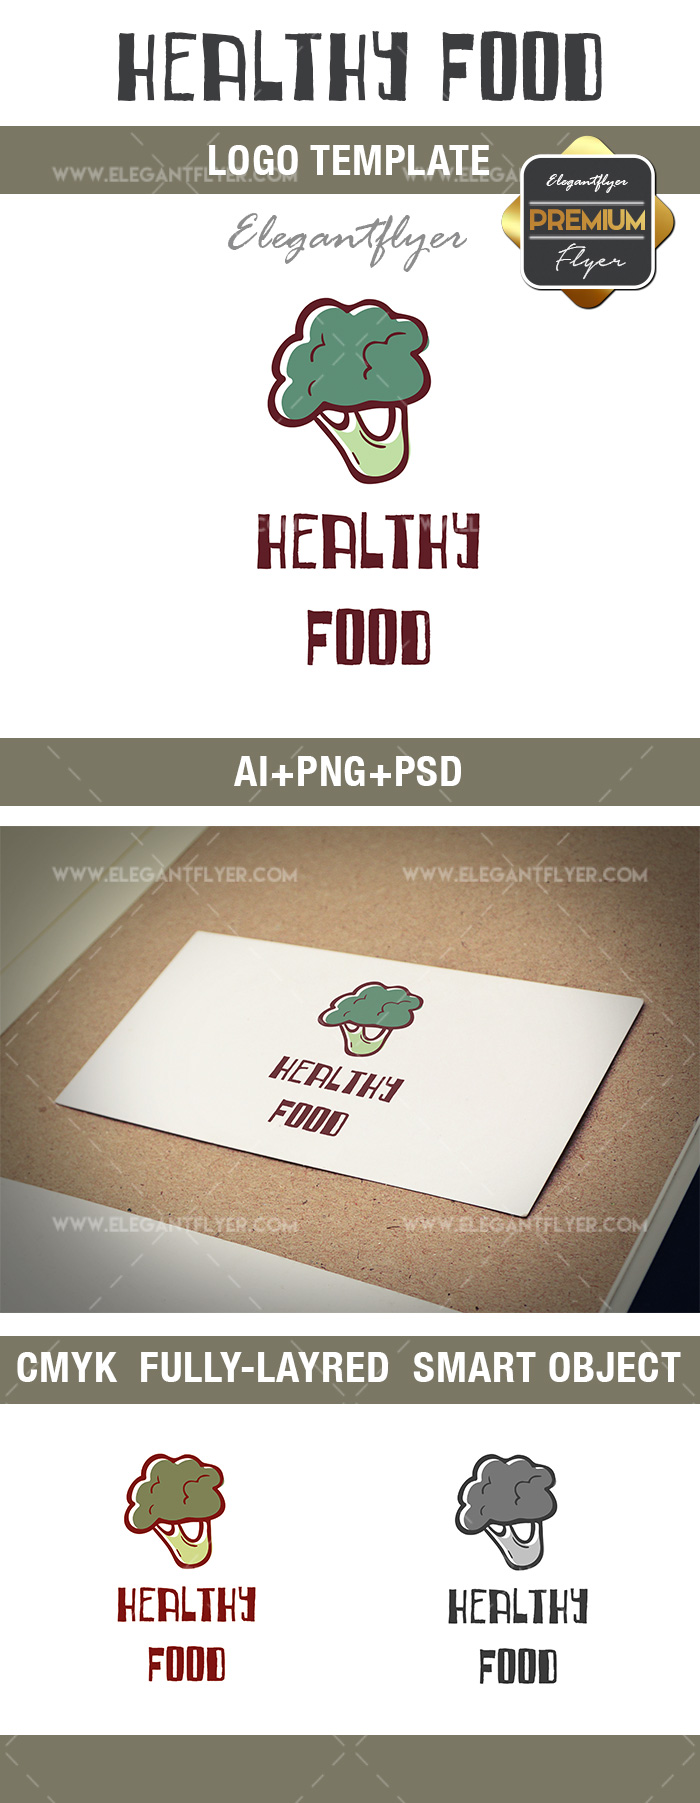 Healthy Food – Premium Logo Template